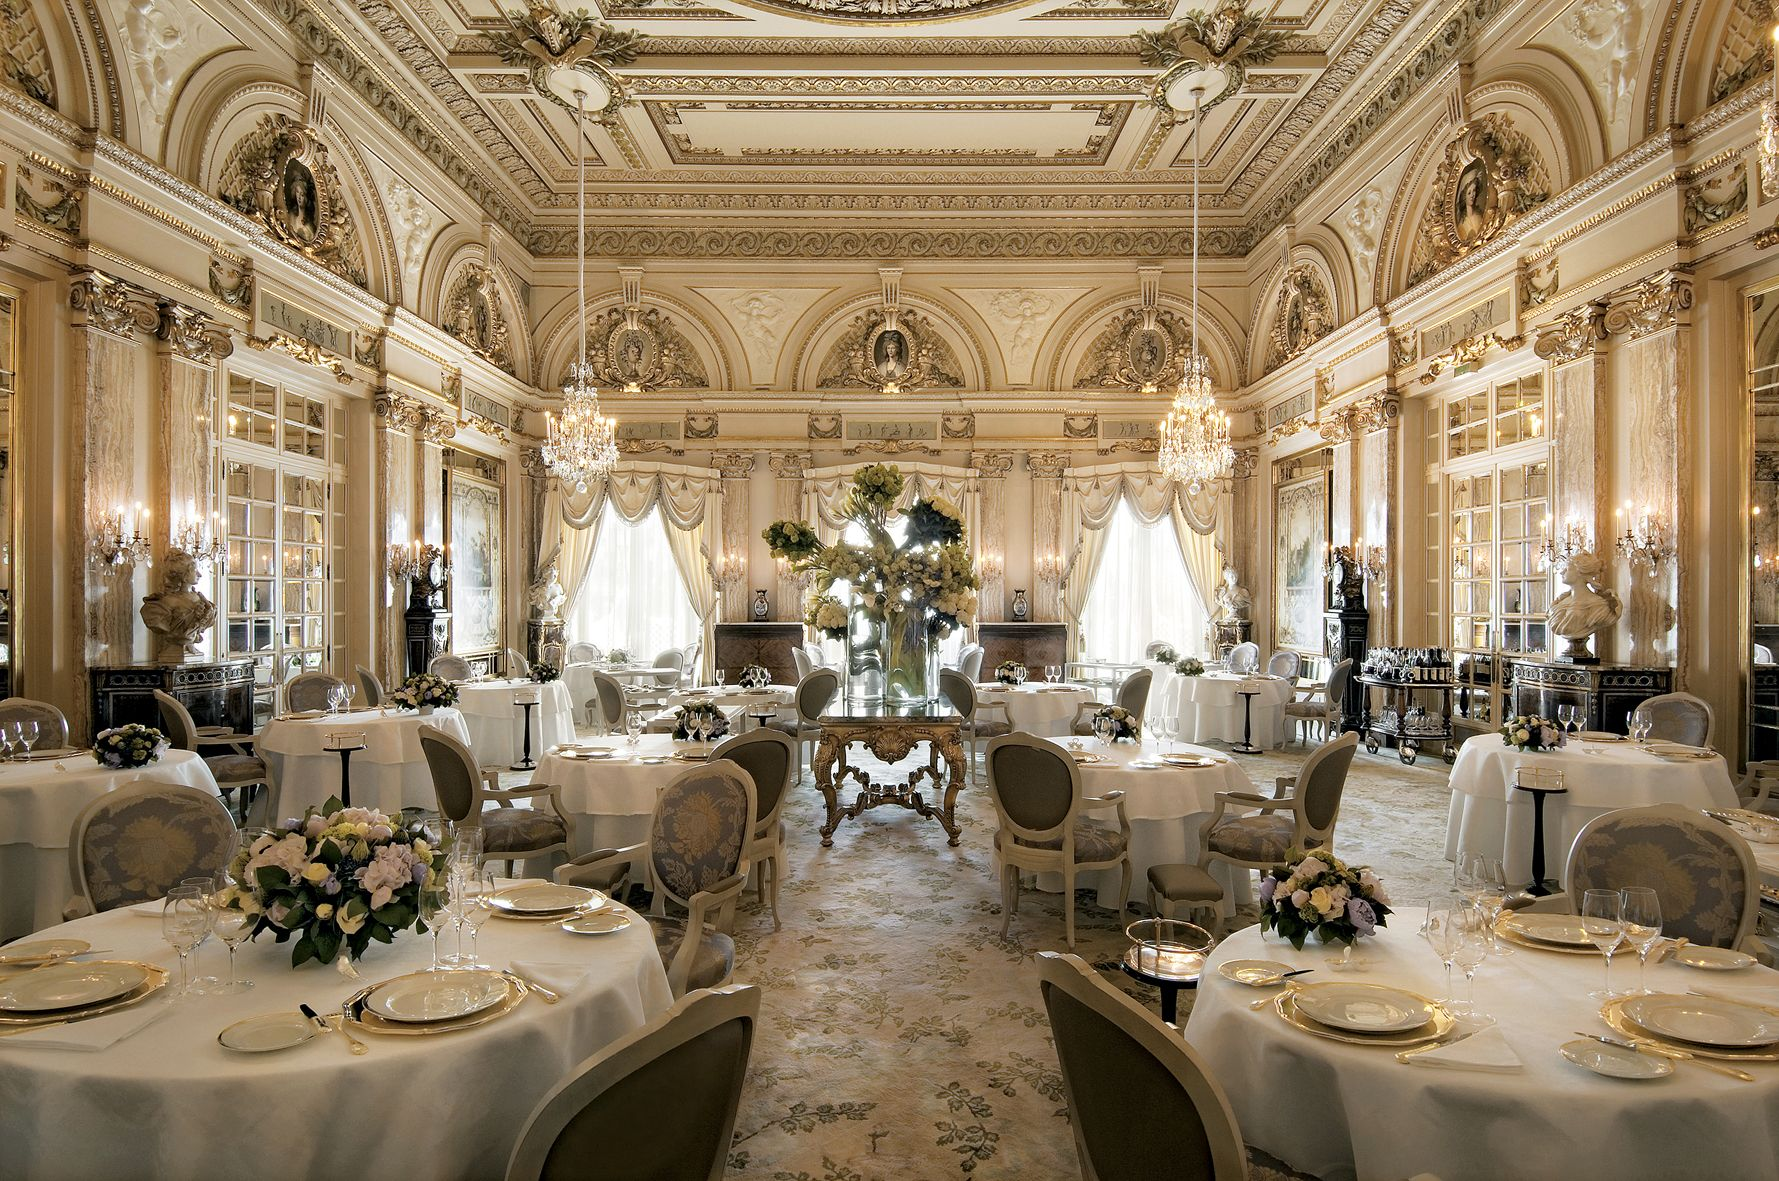 World Best Hotels, Monte Carlo, Monaco, Hotel de Paris Louis XV restaurant interior